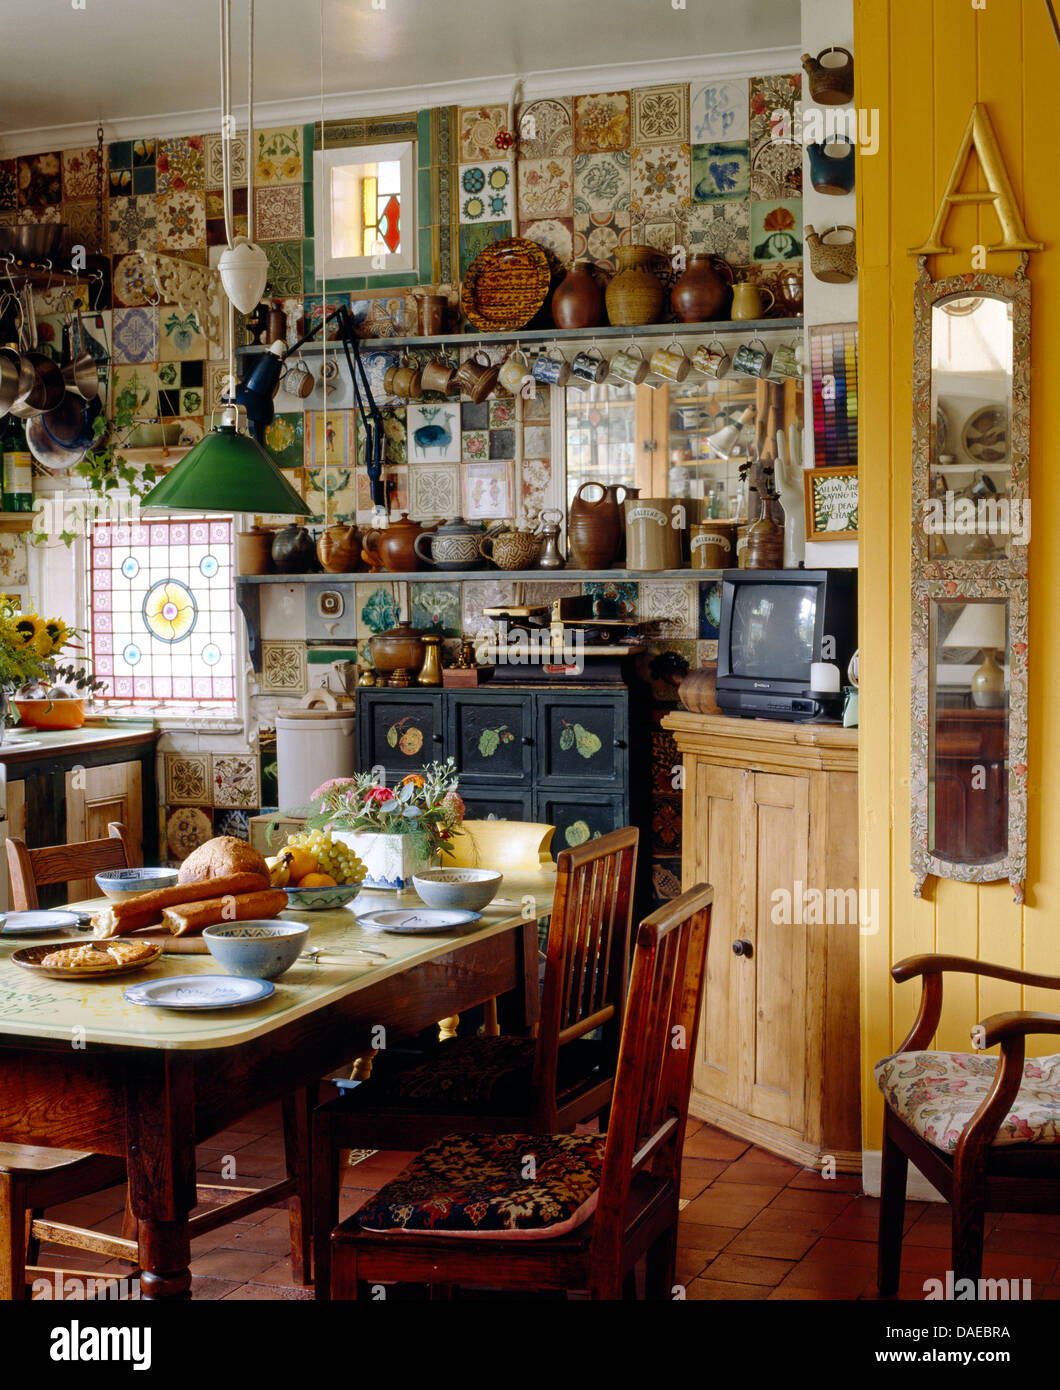 Old Pine Table And Chairs In Cluttered Cottage Kitchen With Narrow Mirror On The Wall Stock Photo Alamy